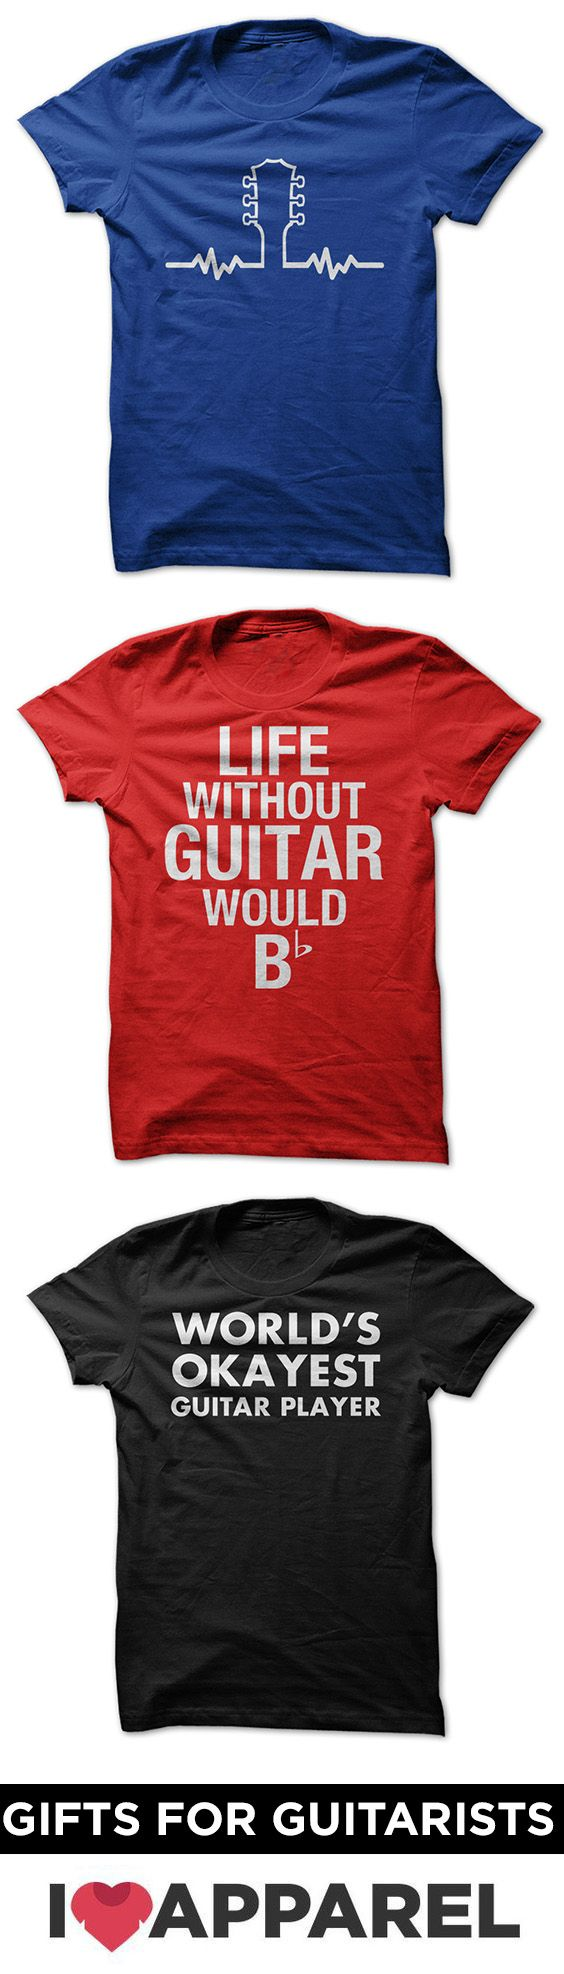 Shirts for guitar players. Check out our huge selection of guitar shirts. Great gift idea for that guitarist in your life or for yourself.